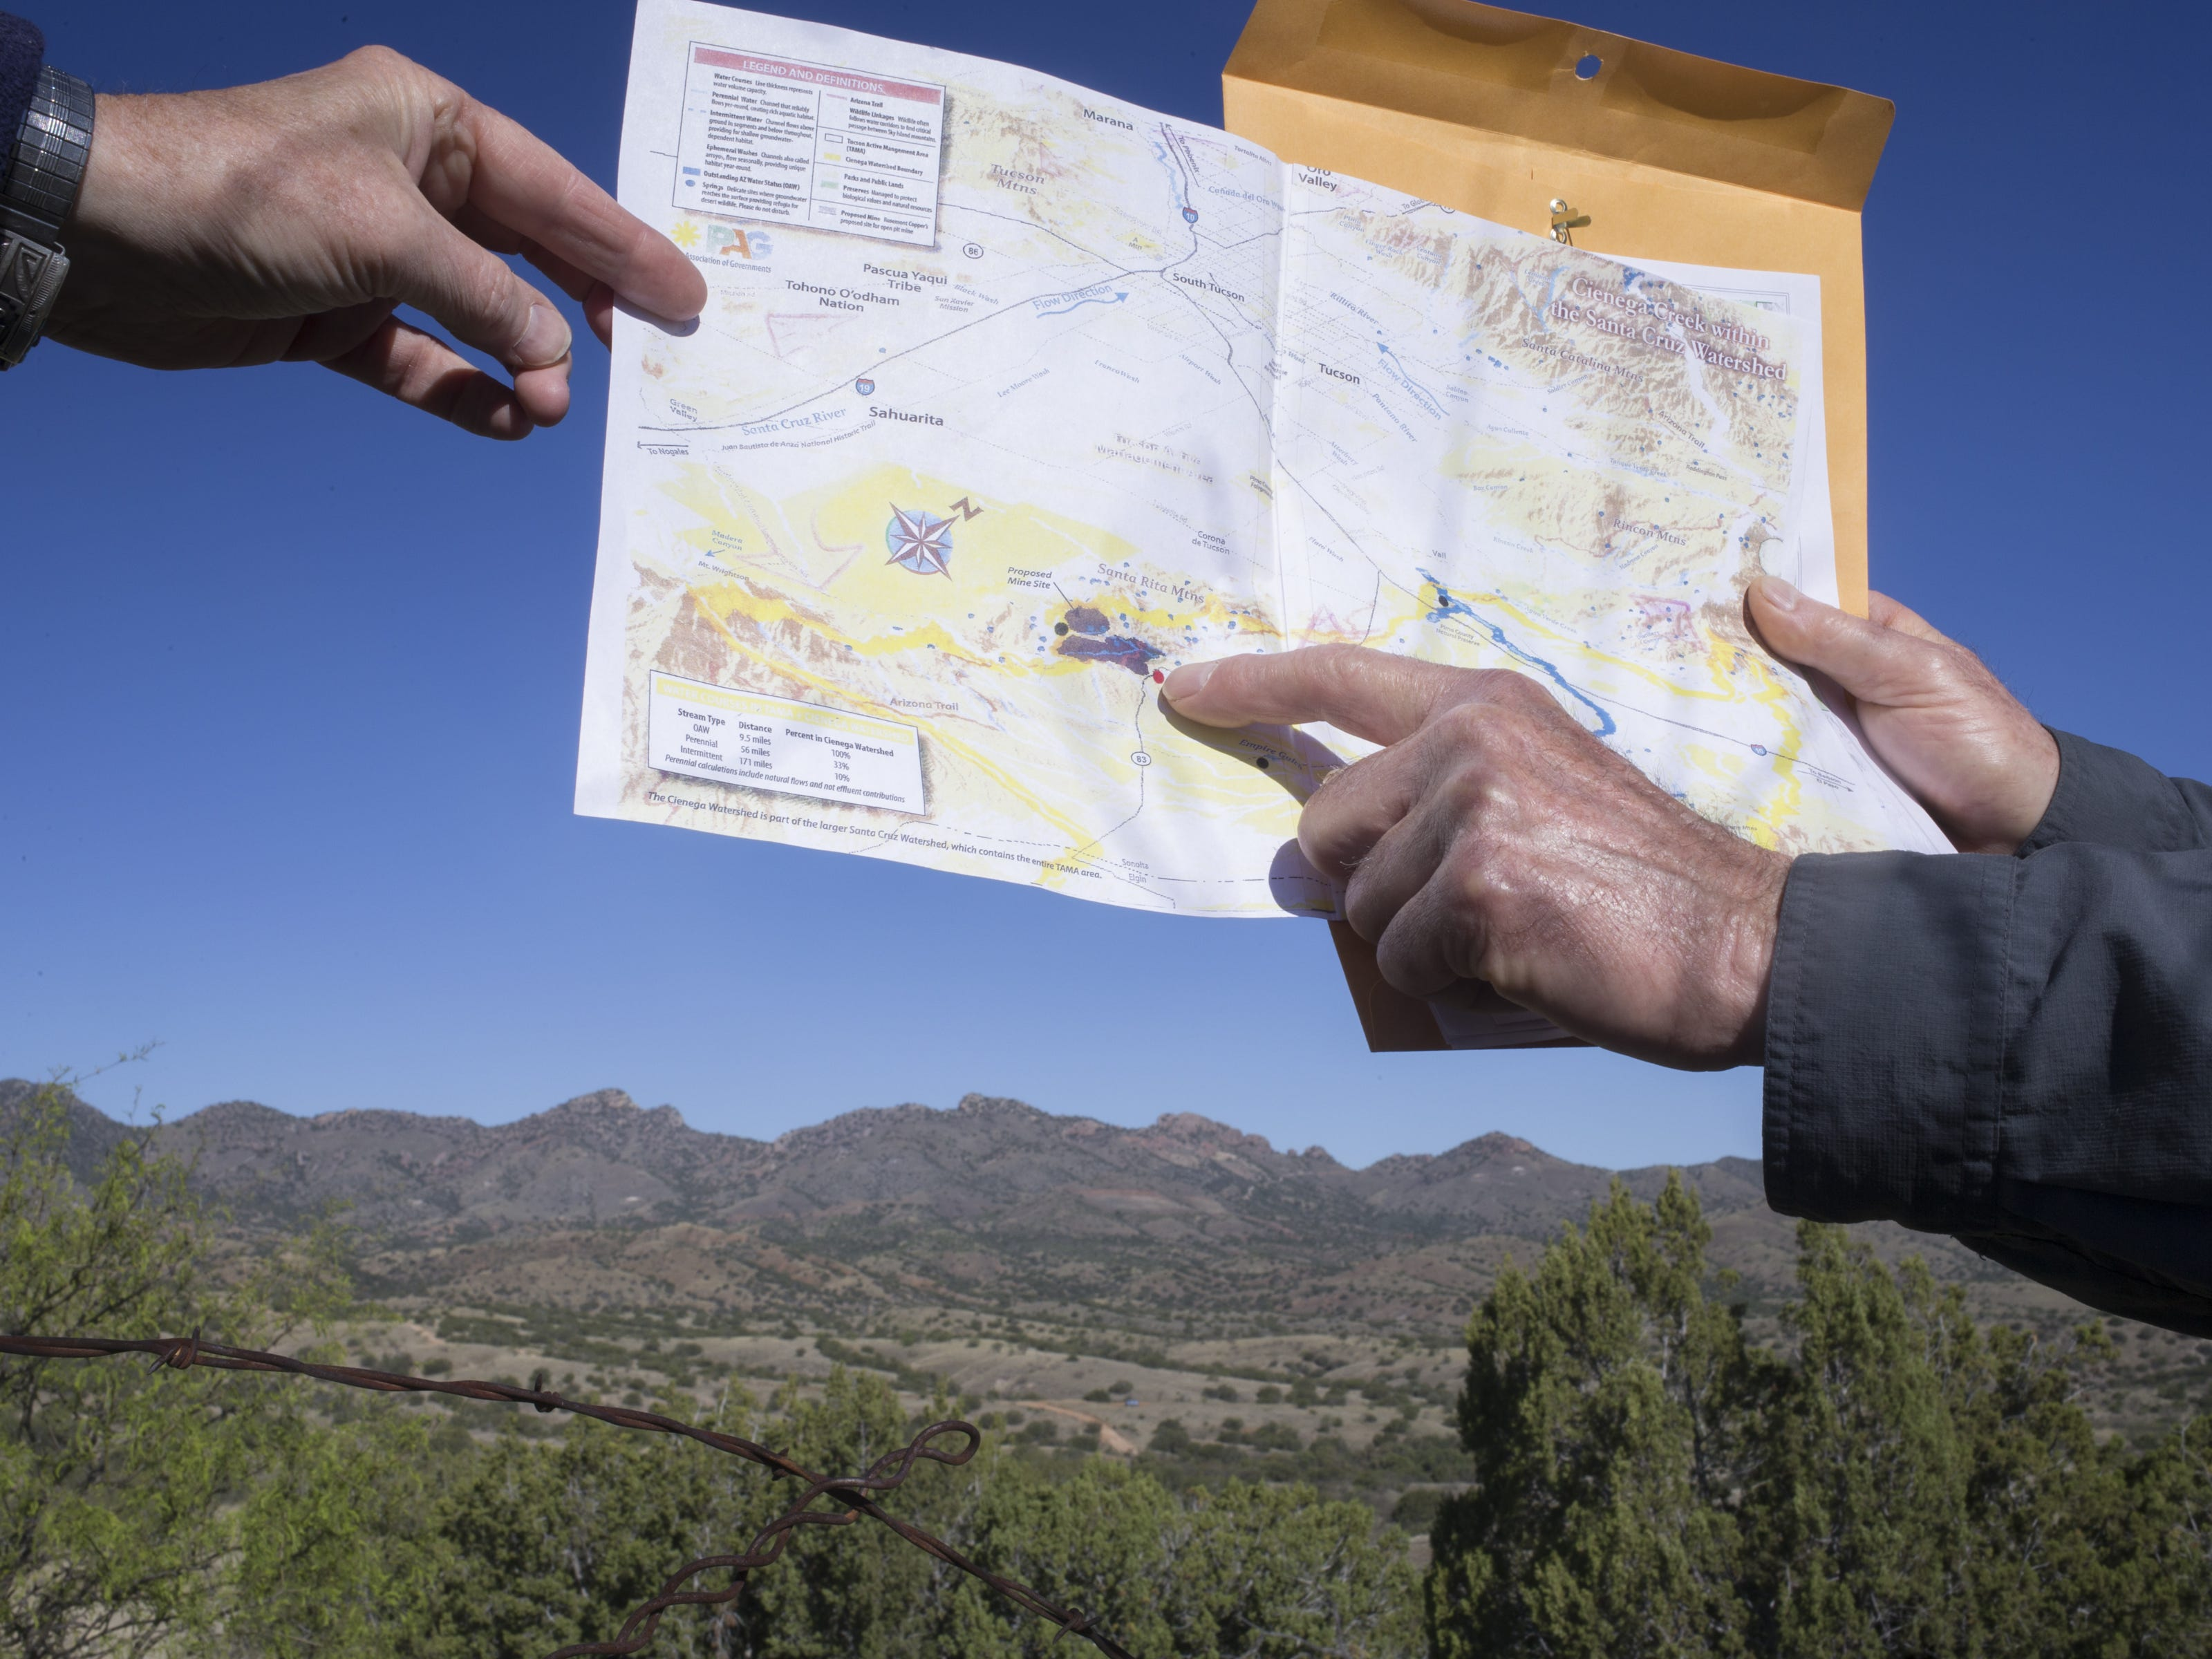 Vice President of Save the Scenic Santa Ritas Greg Shinsky (right) points to his location on a map, April 24, 2019. The gray area to the left on the map is the proposed Rosemont Mine site.